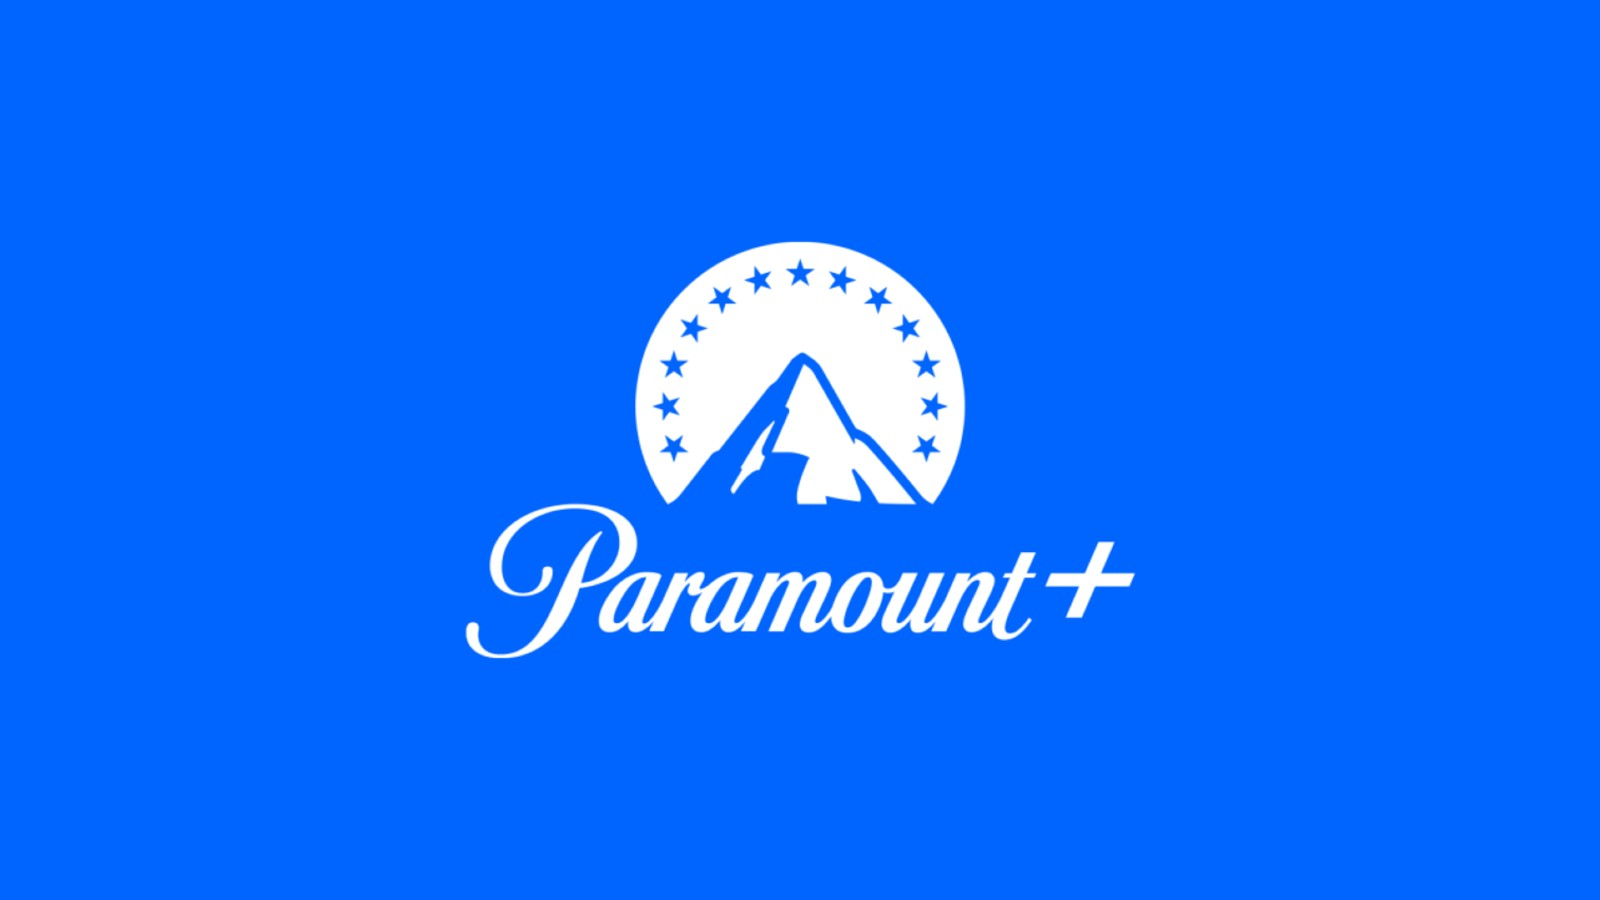 Paramount+ is now available on your Chromecast with Google TV